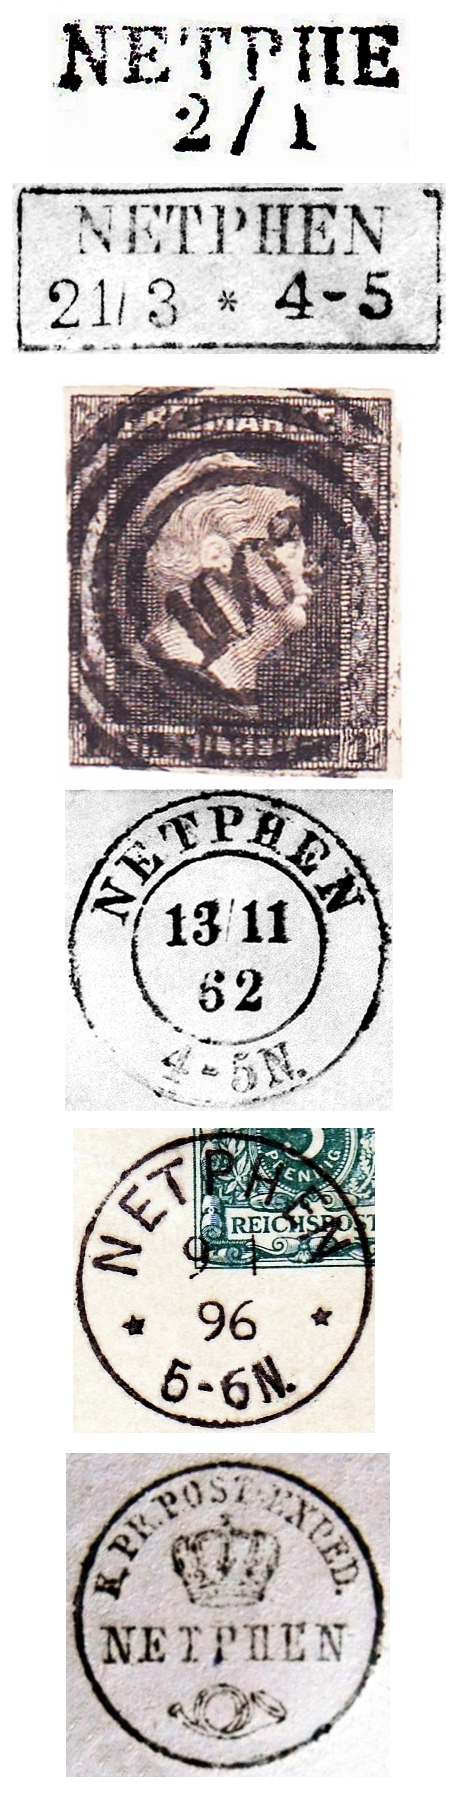 5-Post-u.-Dienststempel-Königl.-Preuß.-Post-Expedition-Netphen-im-19.-Jh.-Archiv-W.-L.